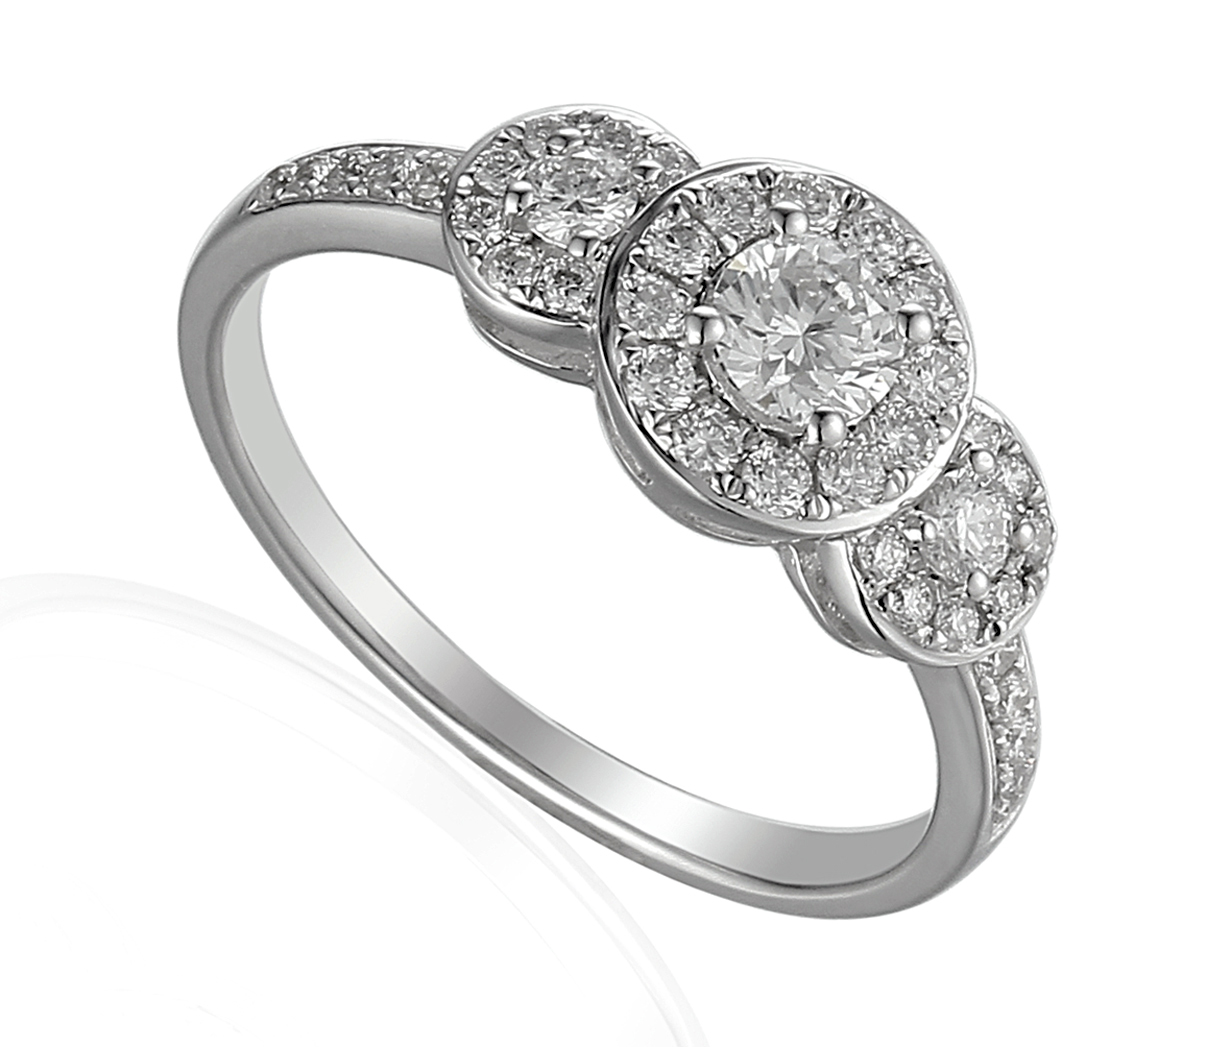 18ct White Gold Triple Cluster Diamond Ring with Diamond Set Shoulders-0